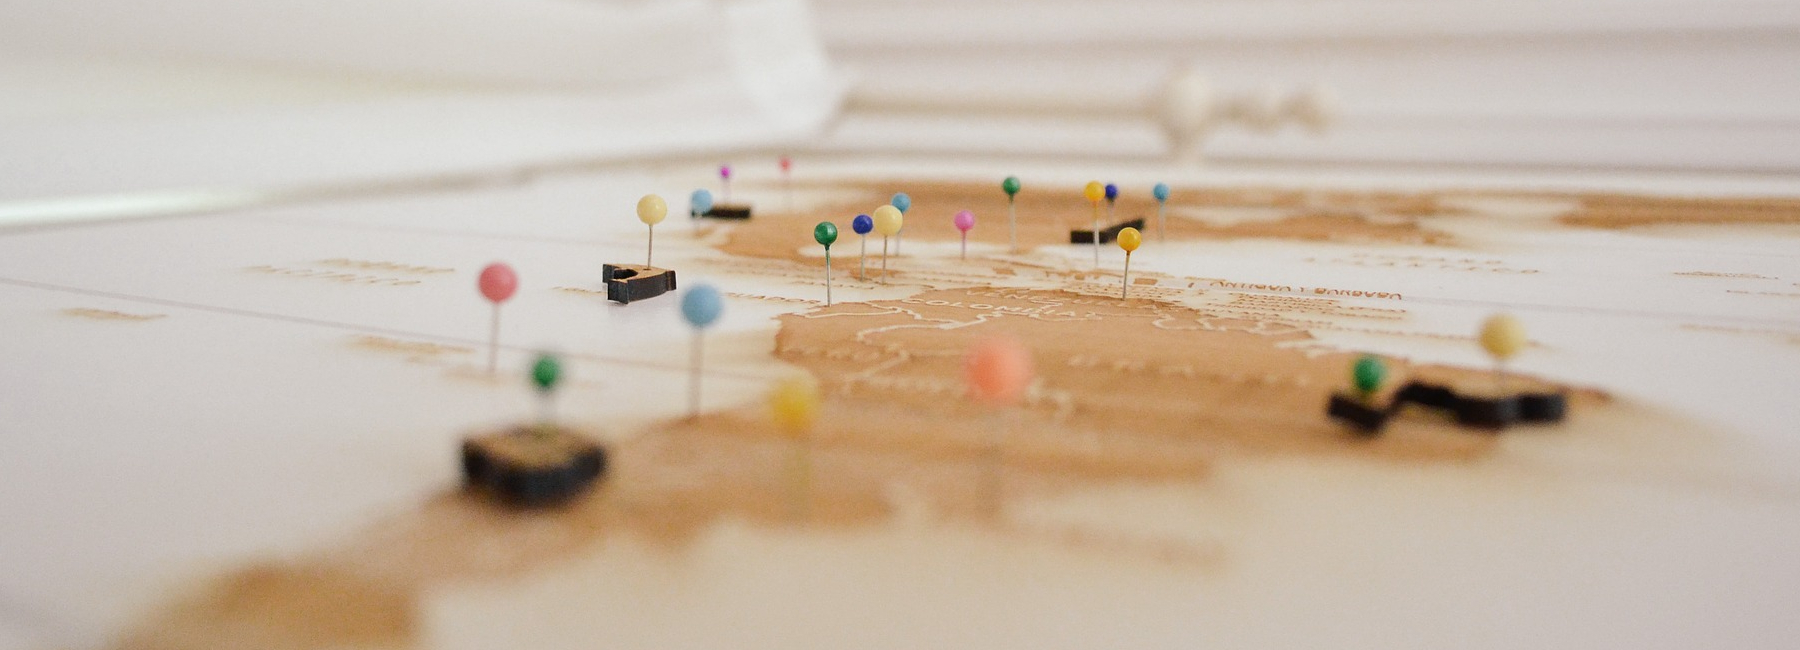 Top 20 Customer Journey Mapping Tools: An Overview - Mopinion Kpmg Customer Journey Mapping Tools on customer journey clip art, research tools, customer service tools, customer experience map example, customer journey icons, customer path to purchase, packaging tools,